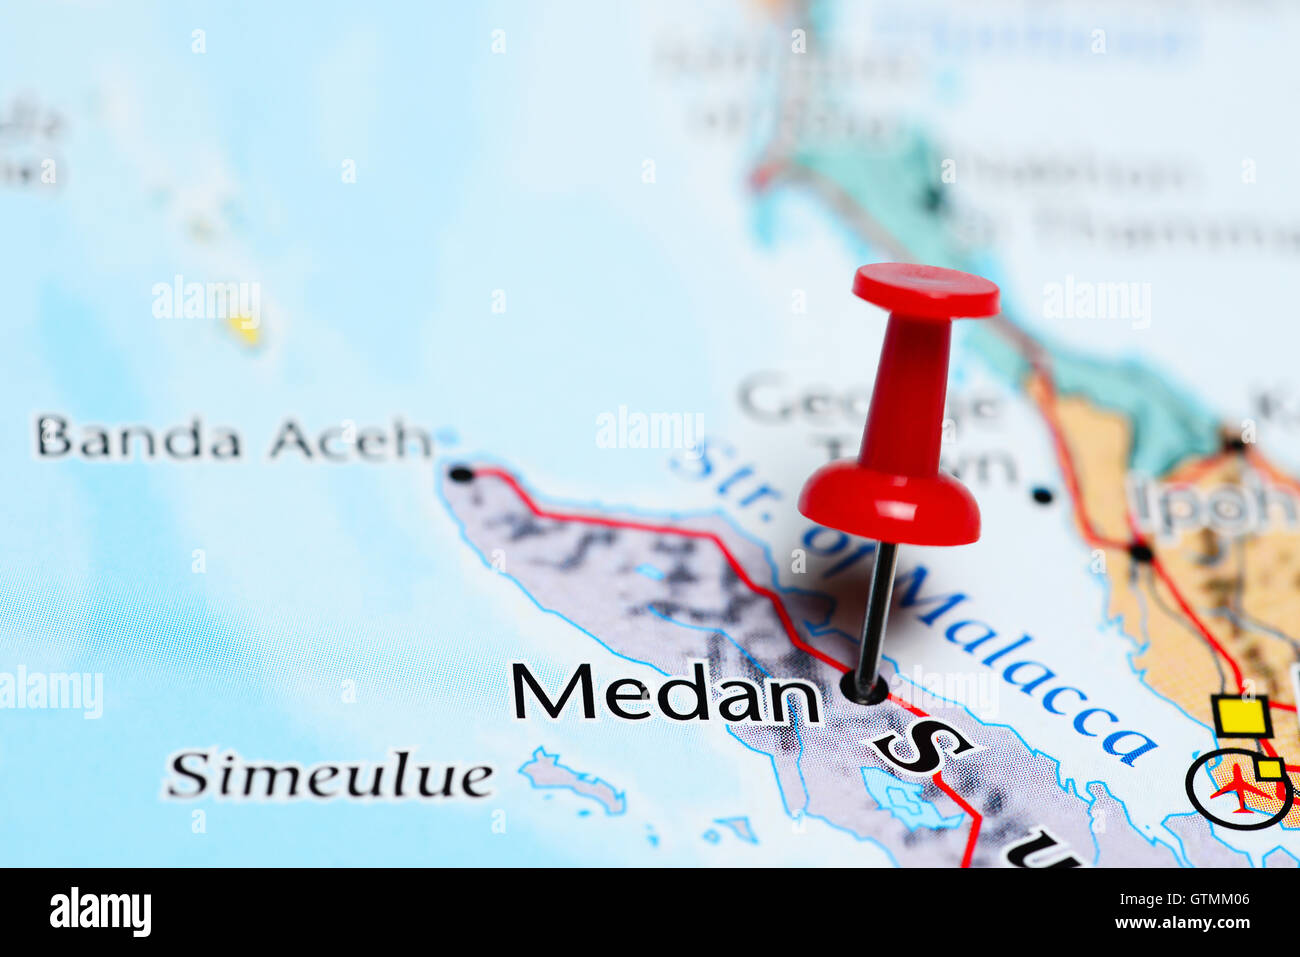 Medan pinned on a map of indonesia stock photo 118468678 alamy medan pinned on a map of indonesia gumiabroncs Gallery